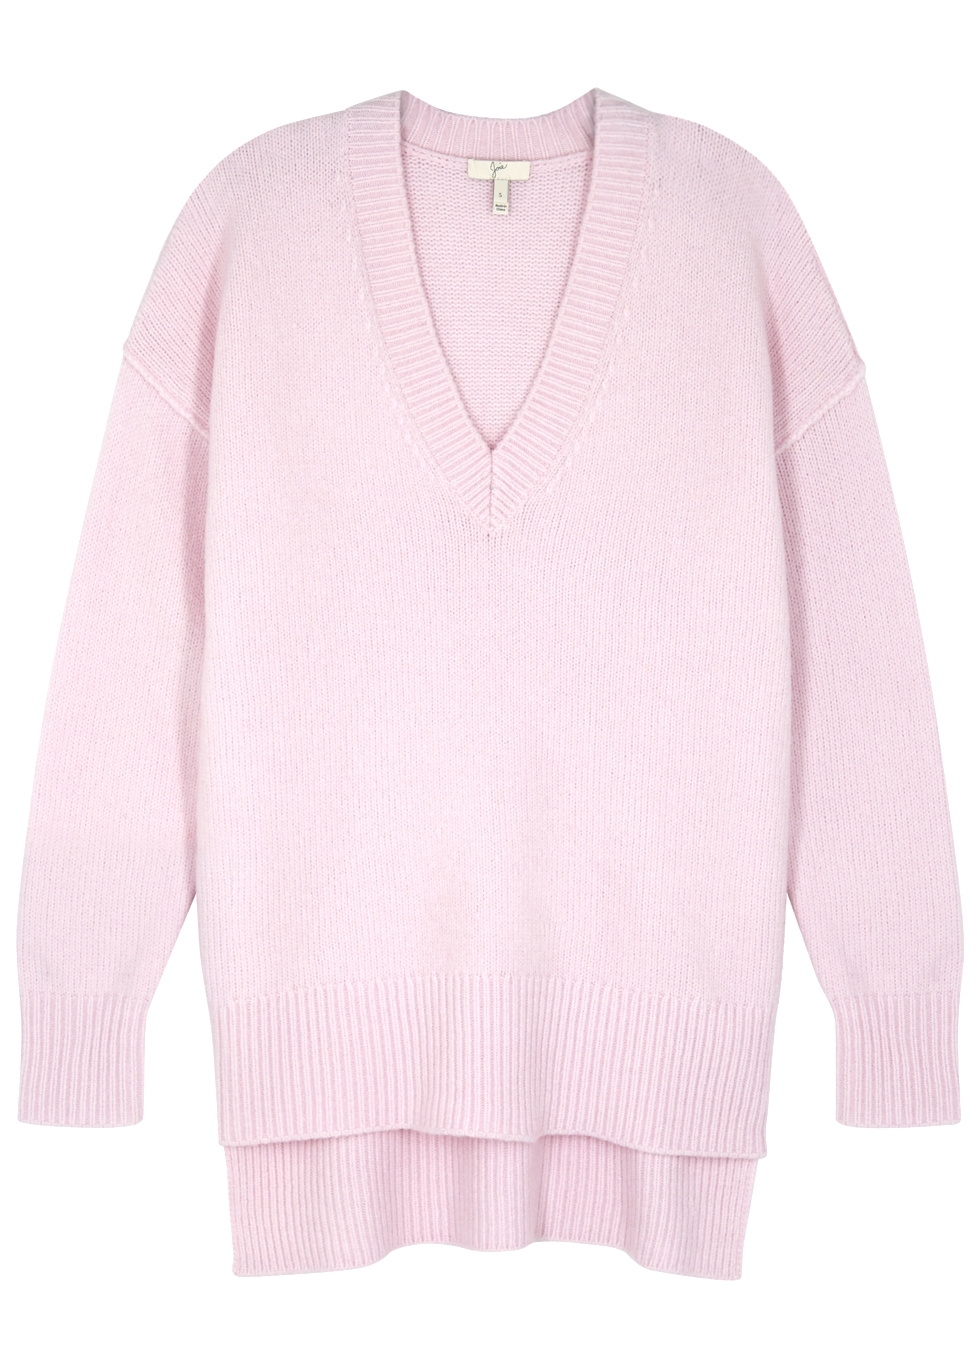 Limana V-Neck Long-Sleeve Wool-Blend Sweater in Lilac from Joie